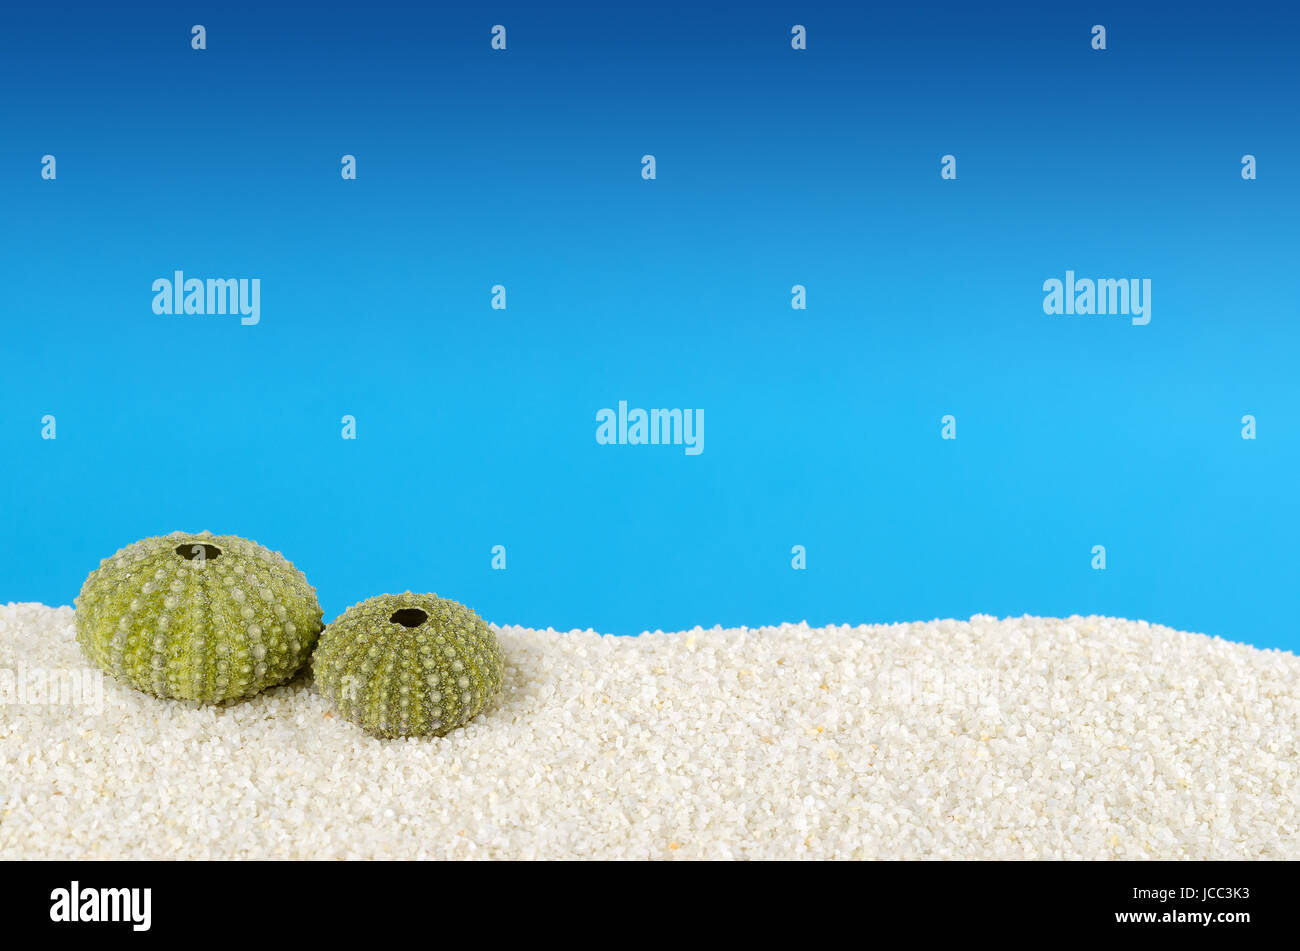 Green sea urchin shell on white sand with blue background. Urchin, also sea hedgehog, with globular endoskeleton, - Stock Image